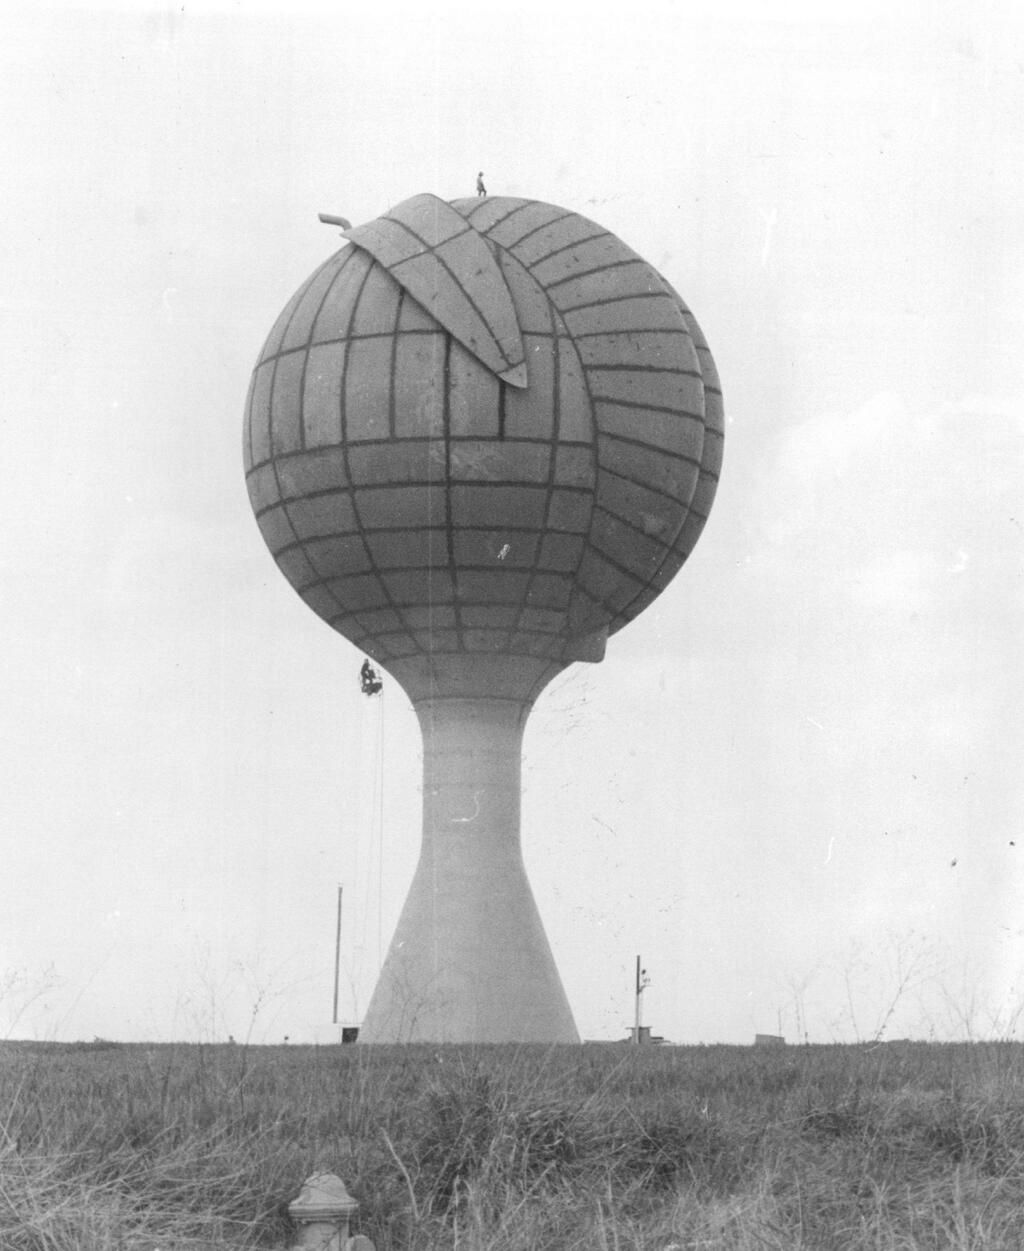 One man s junk cherokee county sc - Gaffney Peach Under Construction 1981